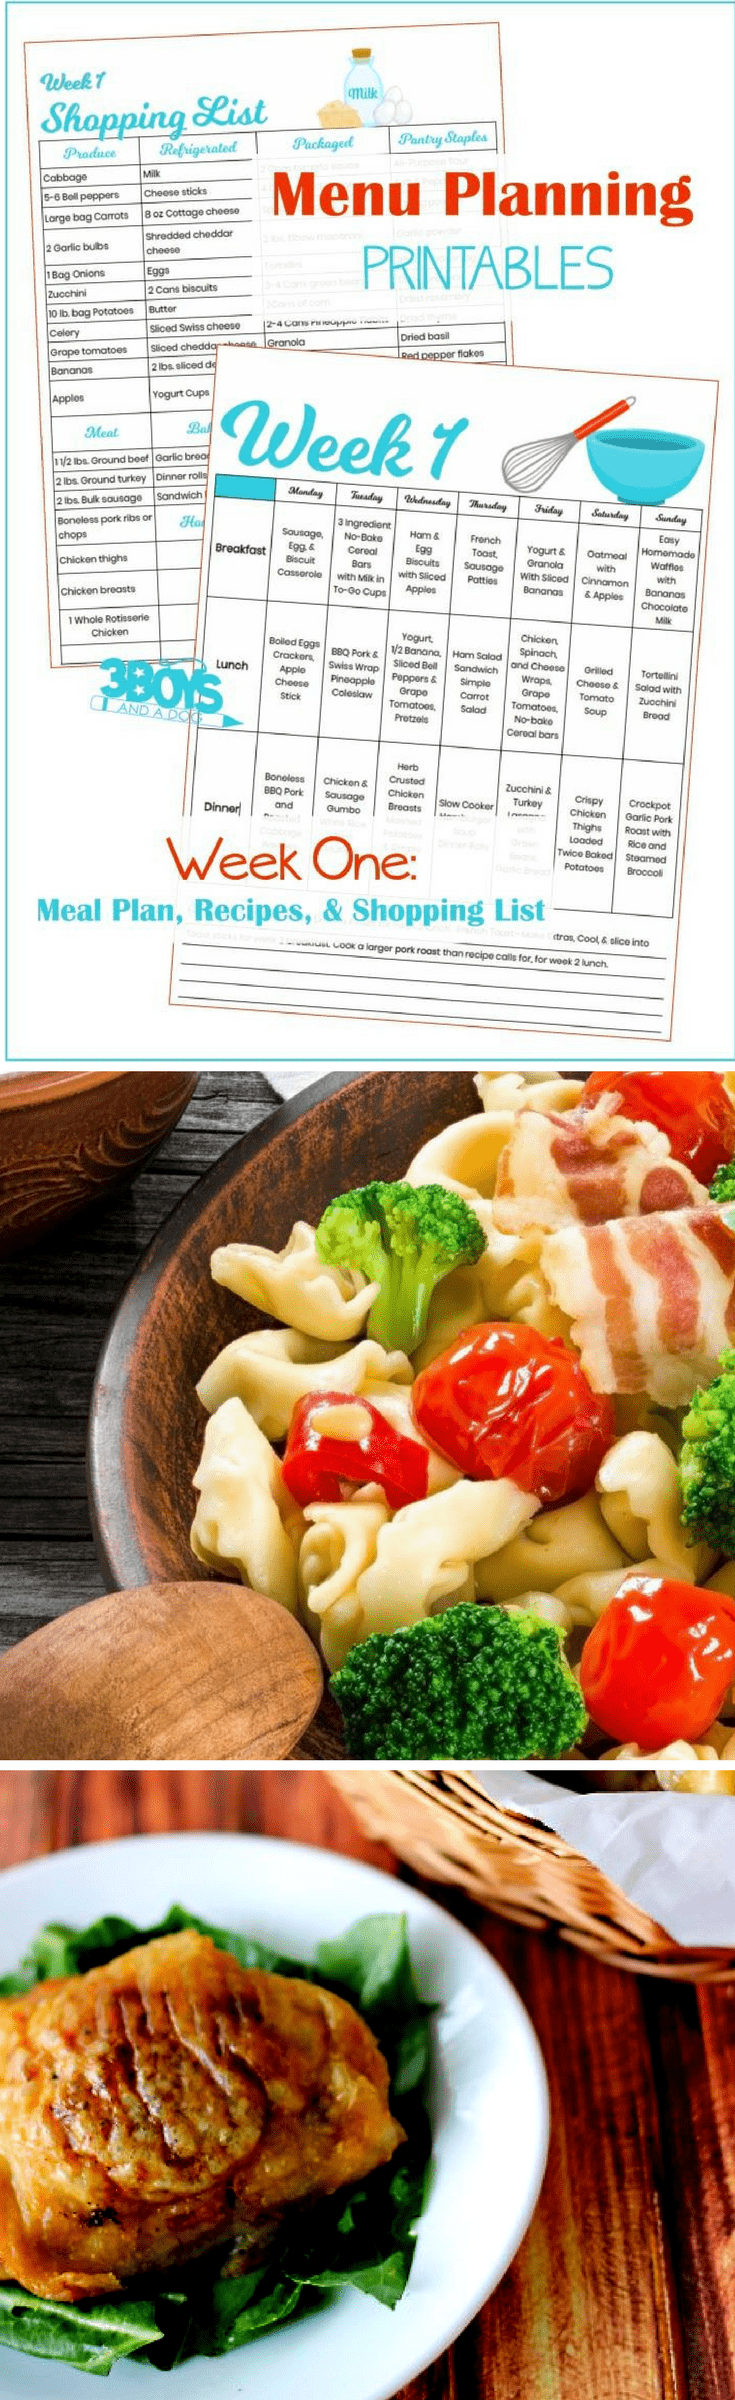 Includes the complete menu plan for the first week of the year - or any week, really.  Had recipes, printable menu, and printable shopping list for breakfast, lunch, and dinner!